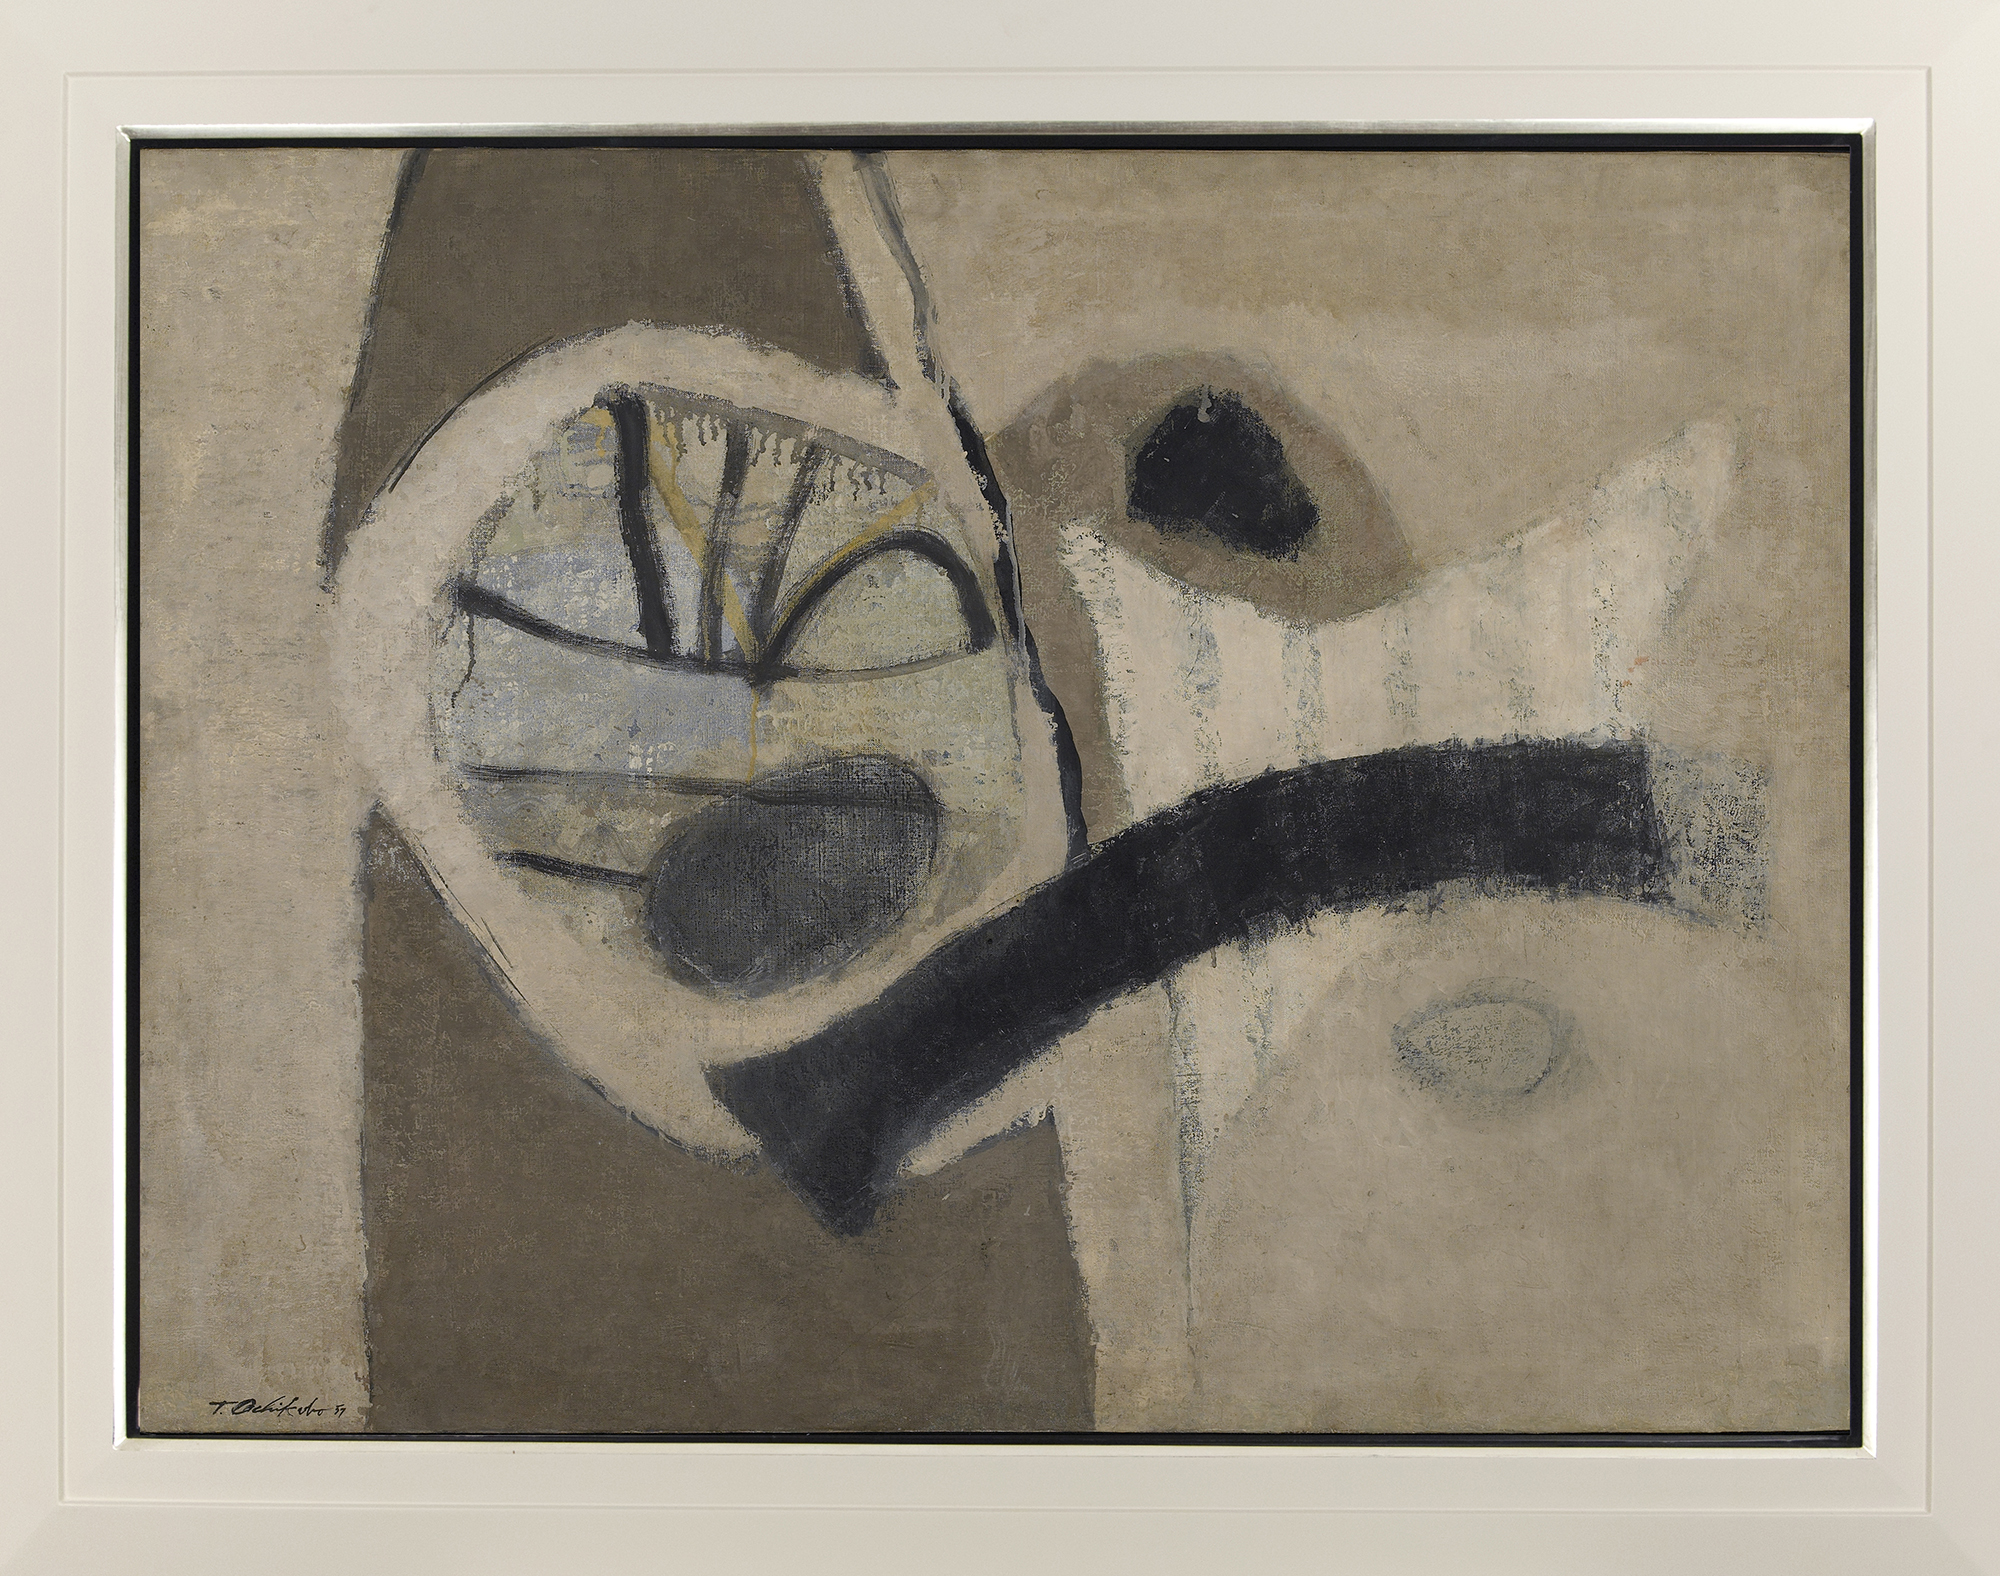 Uninitiate,   Oil on canvas, c. 1950s, 31 x 40 inches, 39 x 49 inches framed